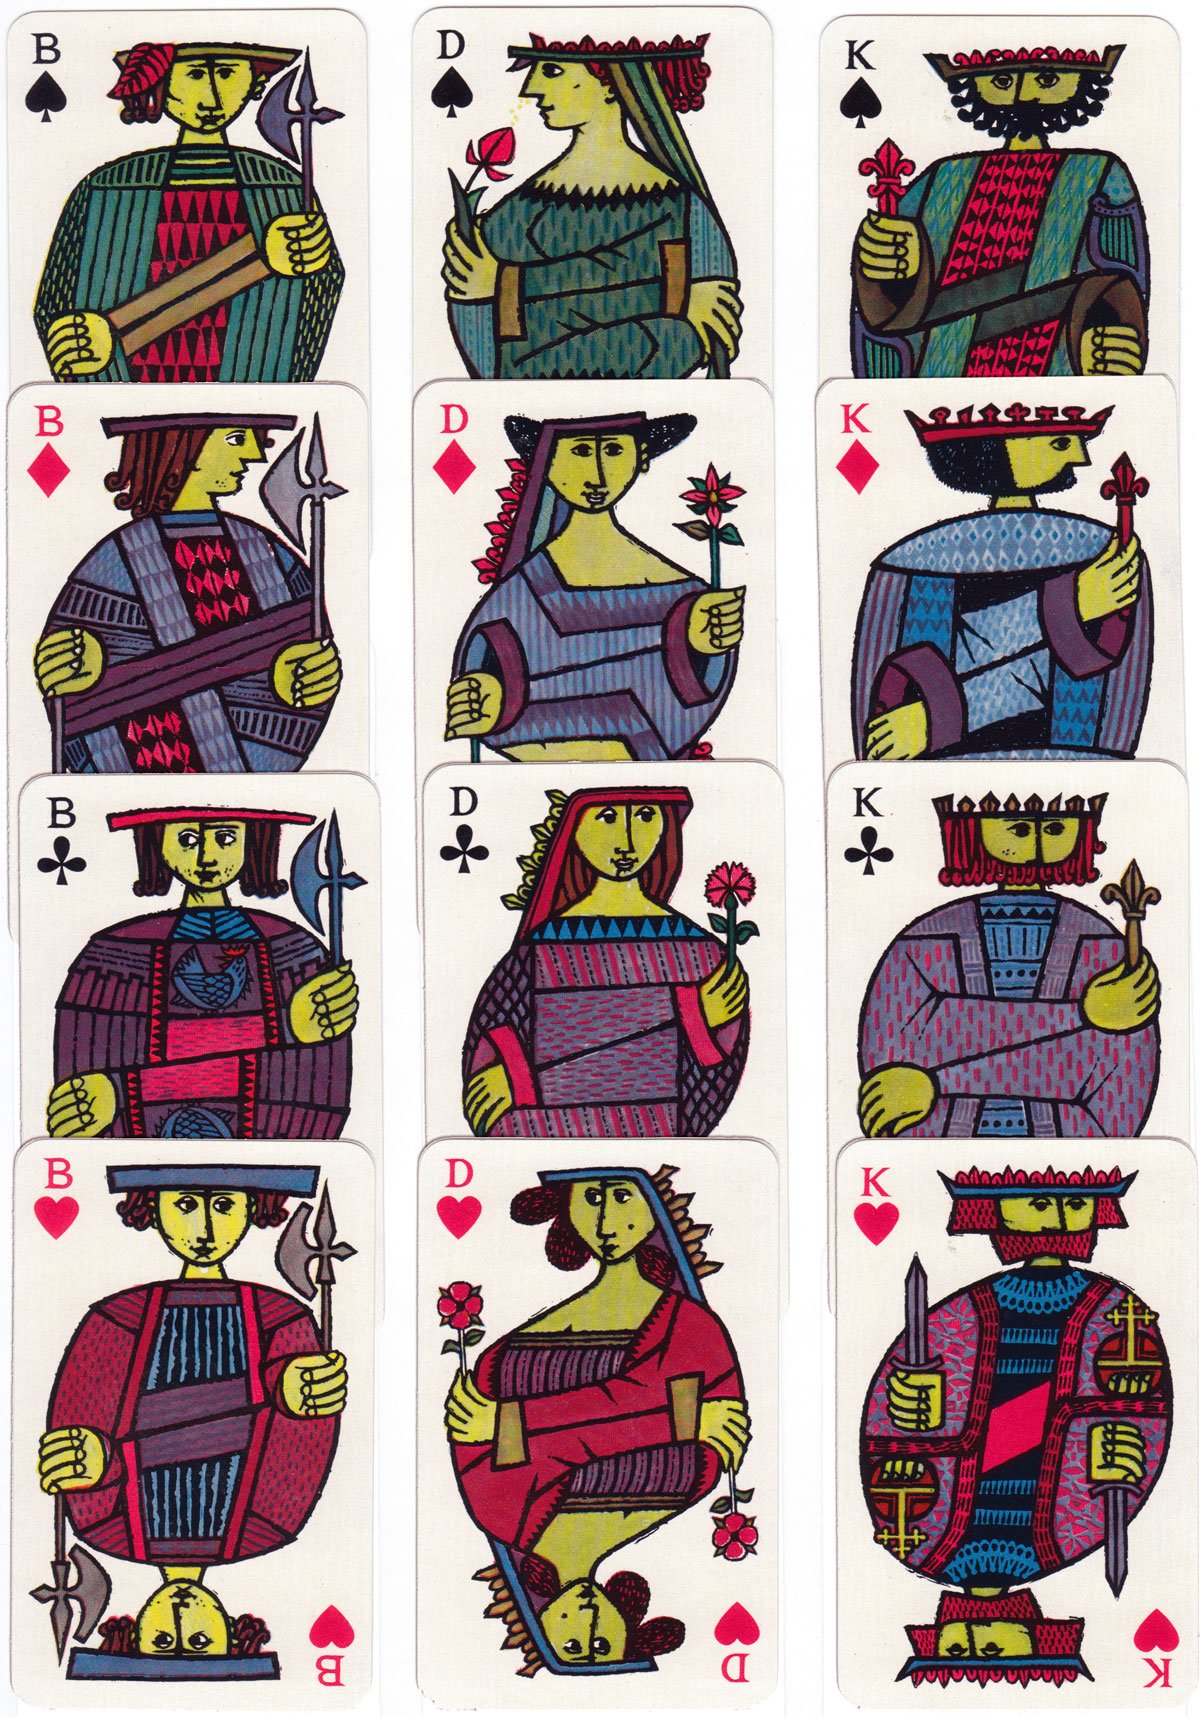 Öbergs 'Comedia' playing cards designed by Stig Lindberg from Sweden, c.1958